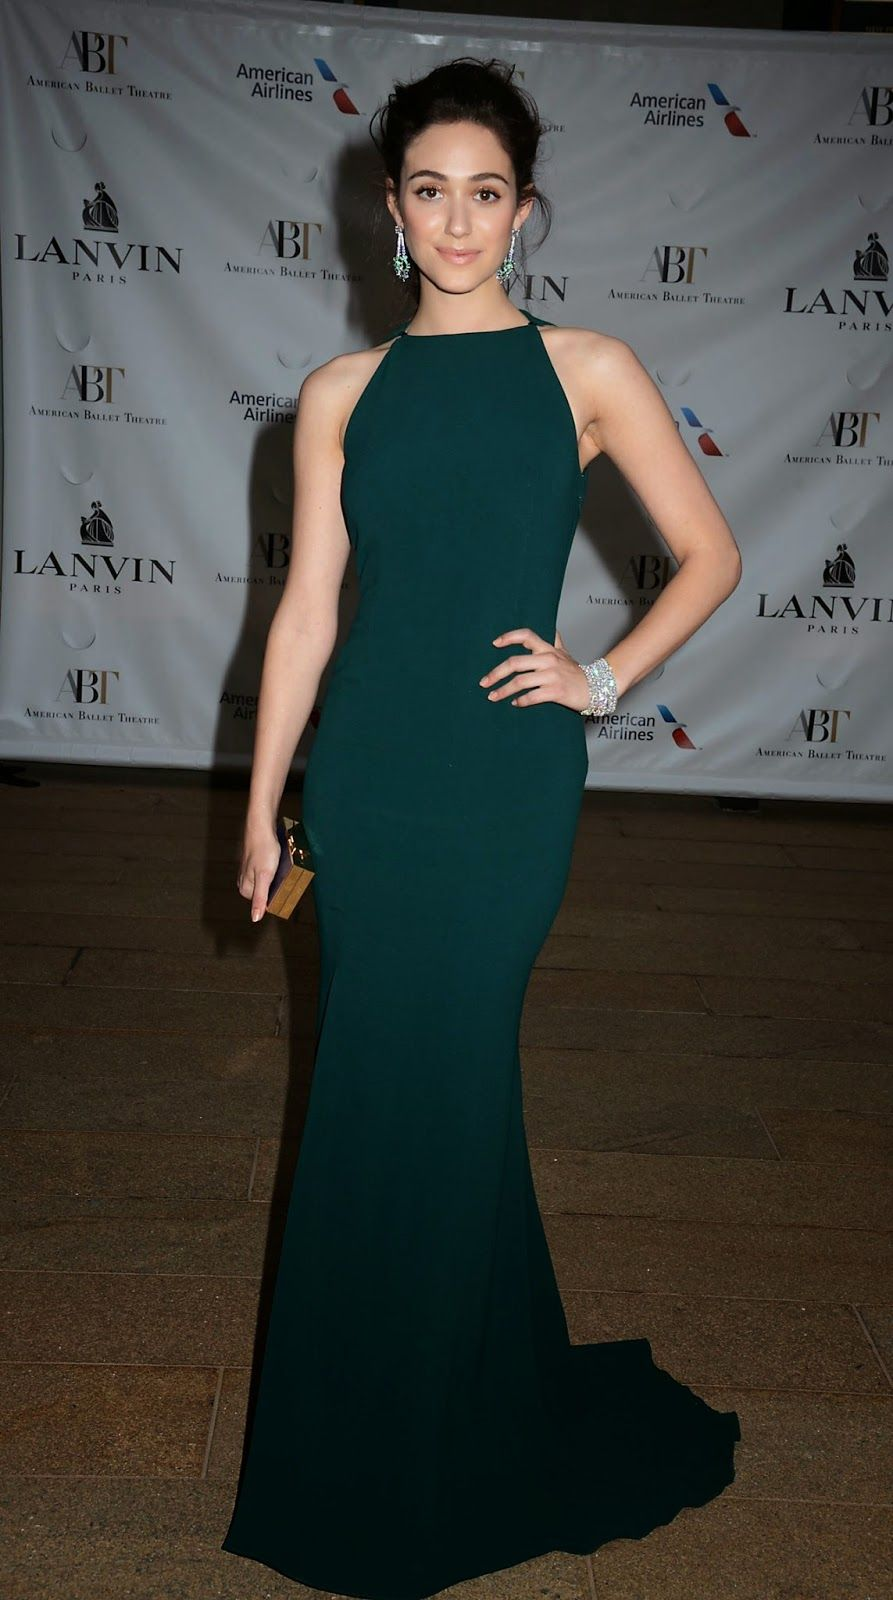 cf30ada1b0 Emmy Rossum is seductive in Lanvin at the 2014 American Ballet ...